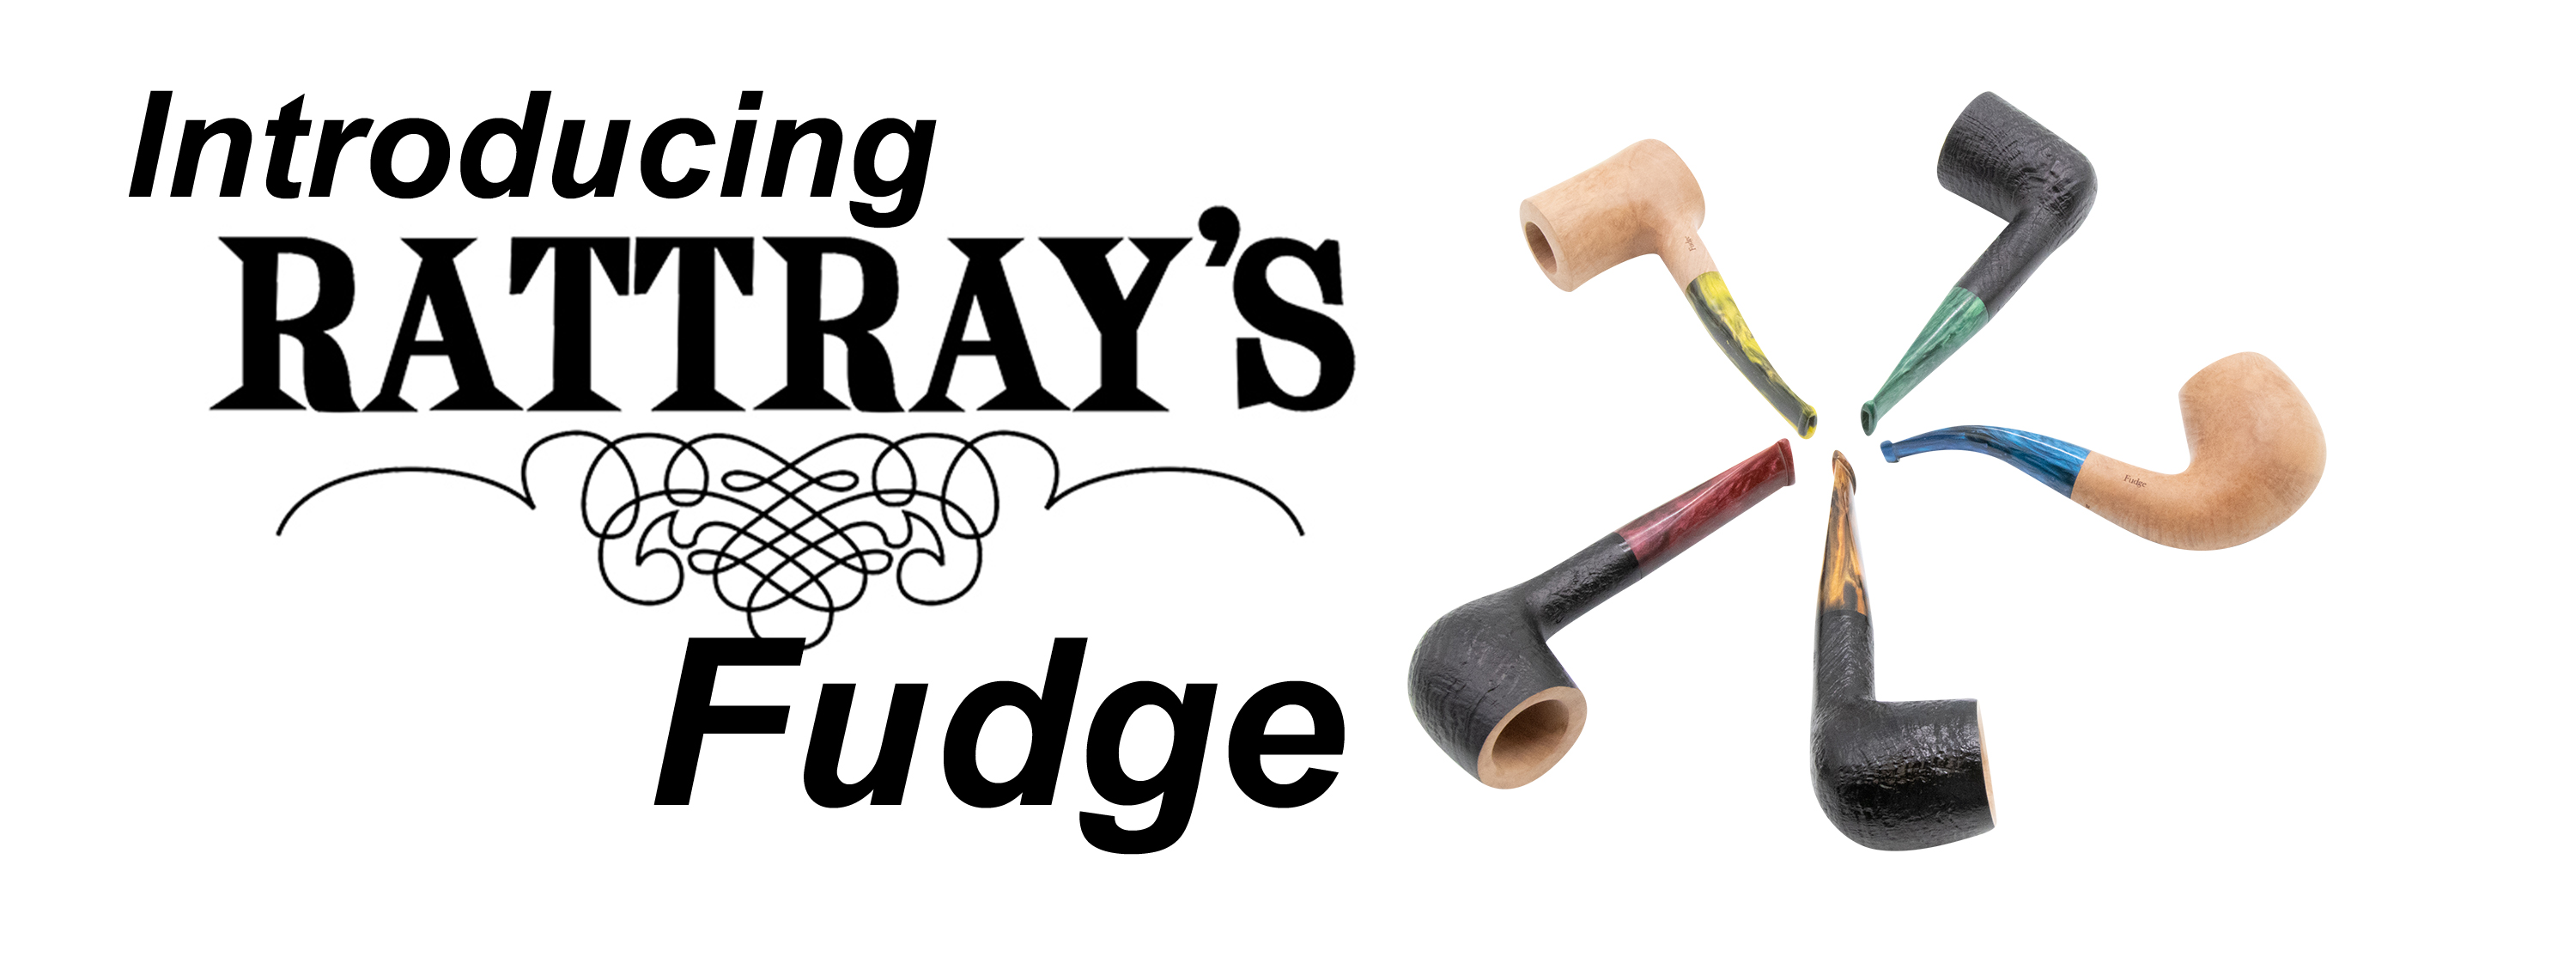 Best Tobacco Pipes Retailer (#1 Price, Service & Shipping)